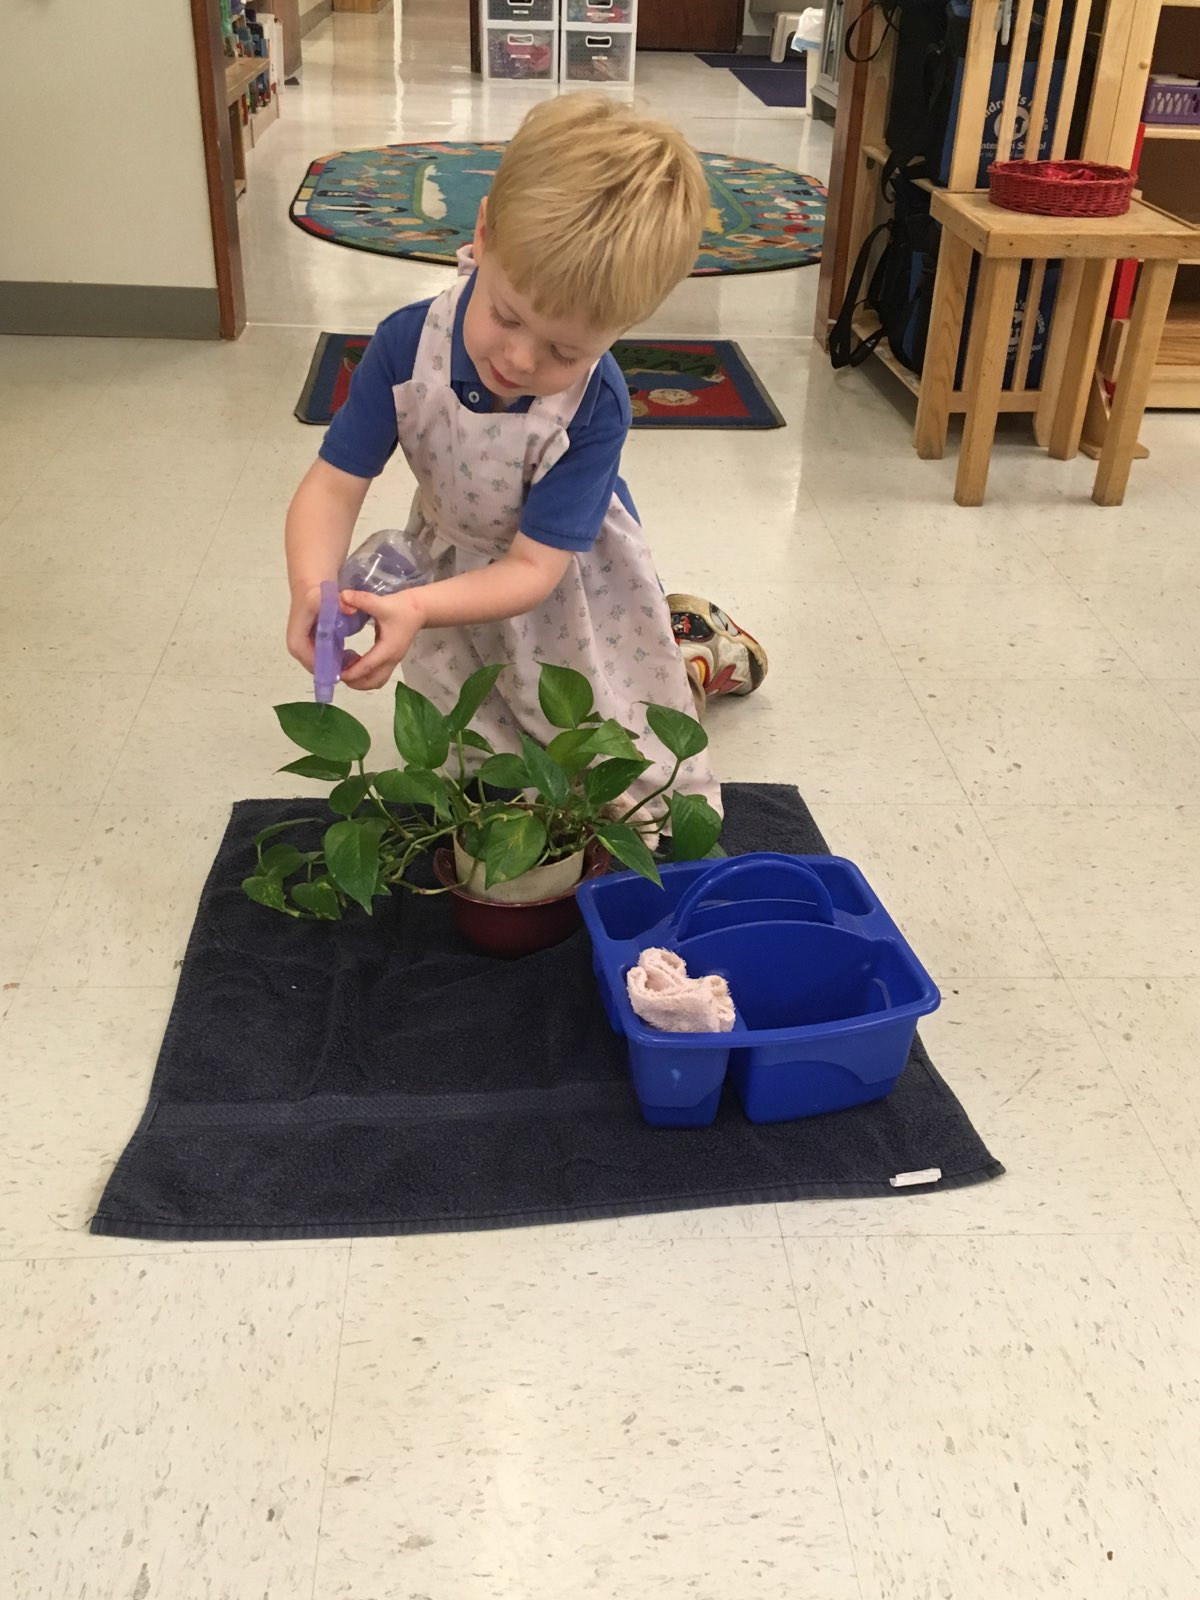 Child clean plant leaves